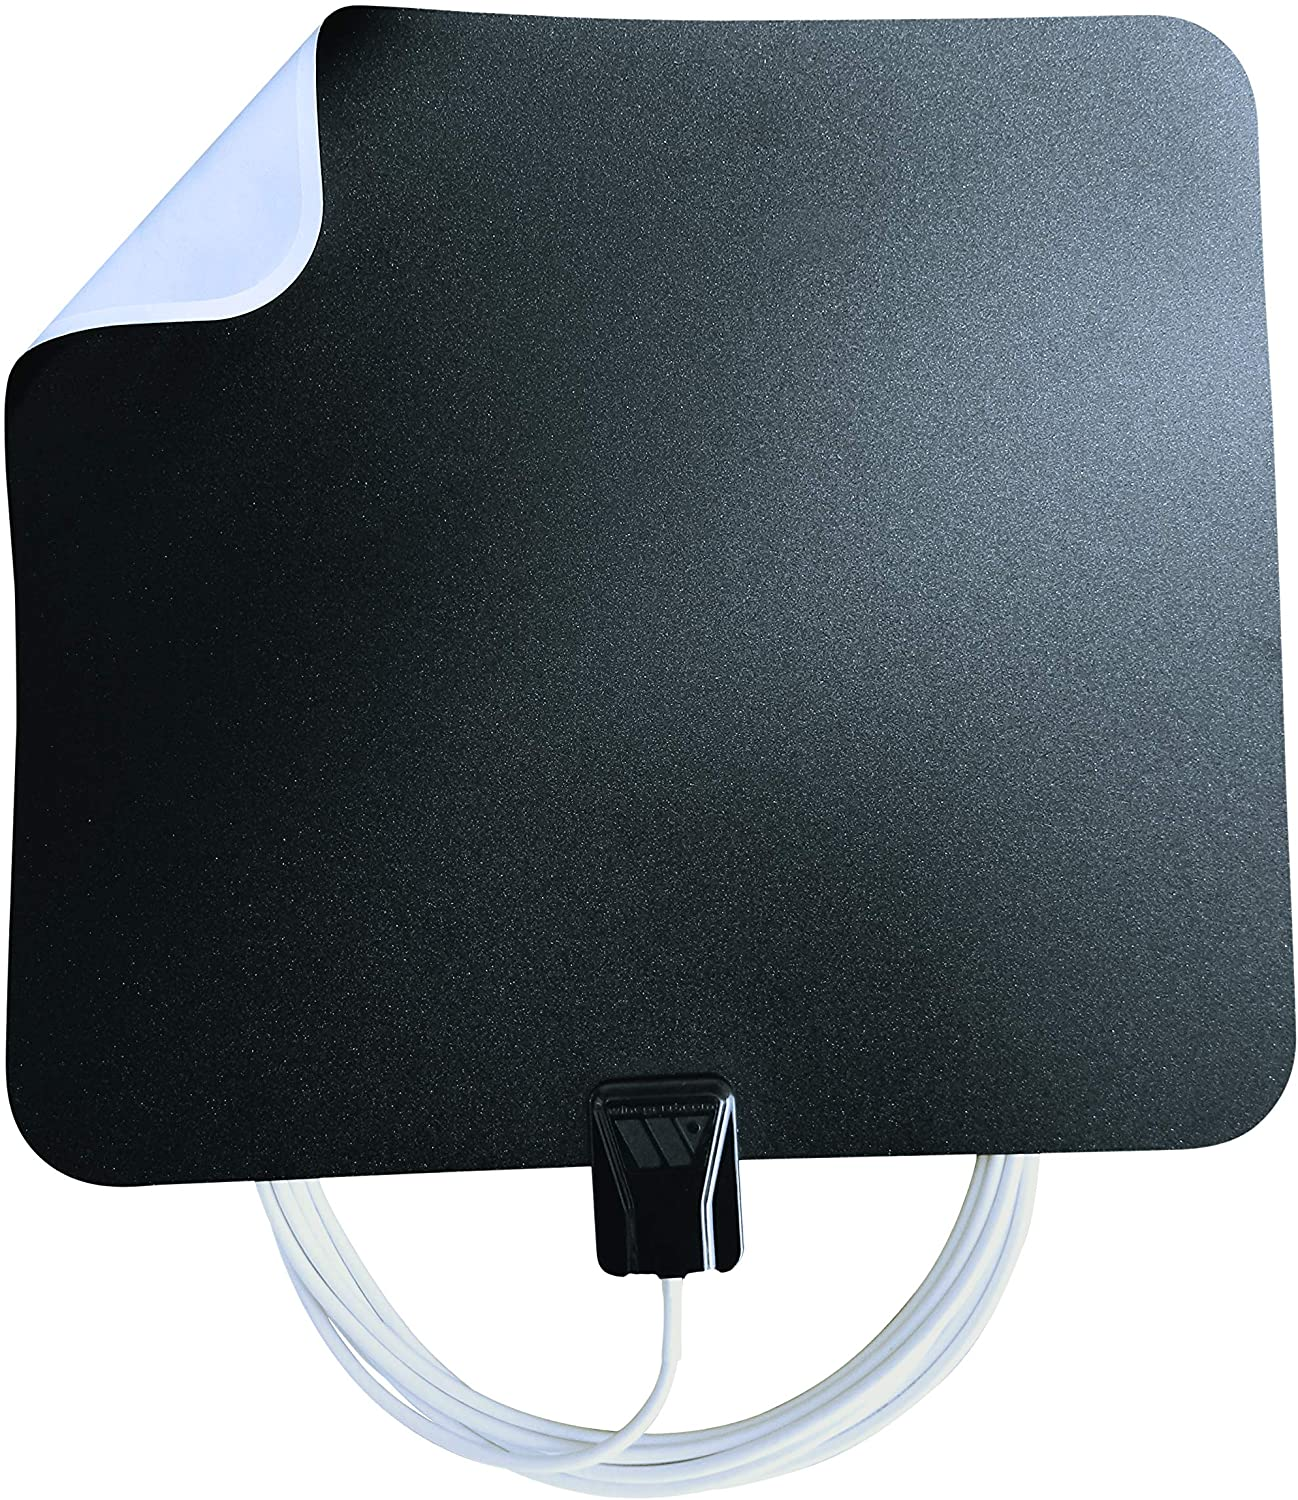 Winegard FL5500A FlatWave Amped Digital HD Indoor TV Antenna